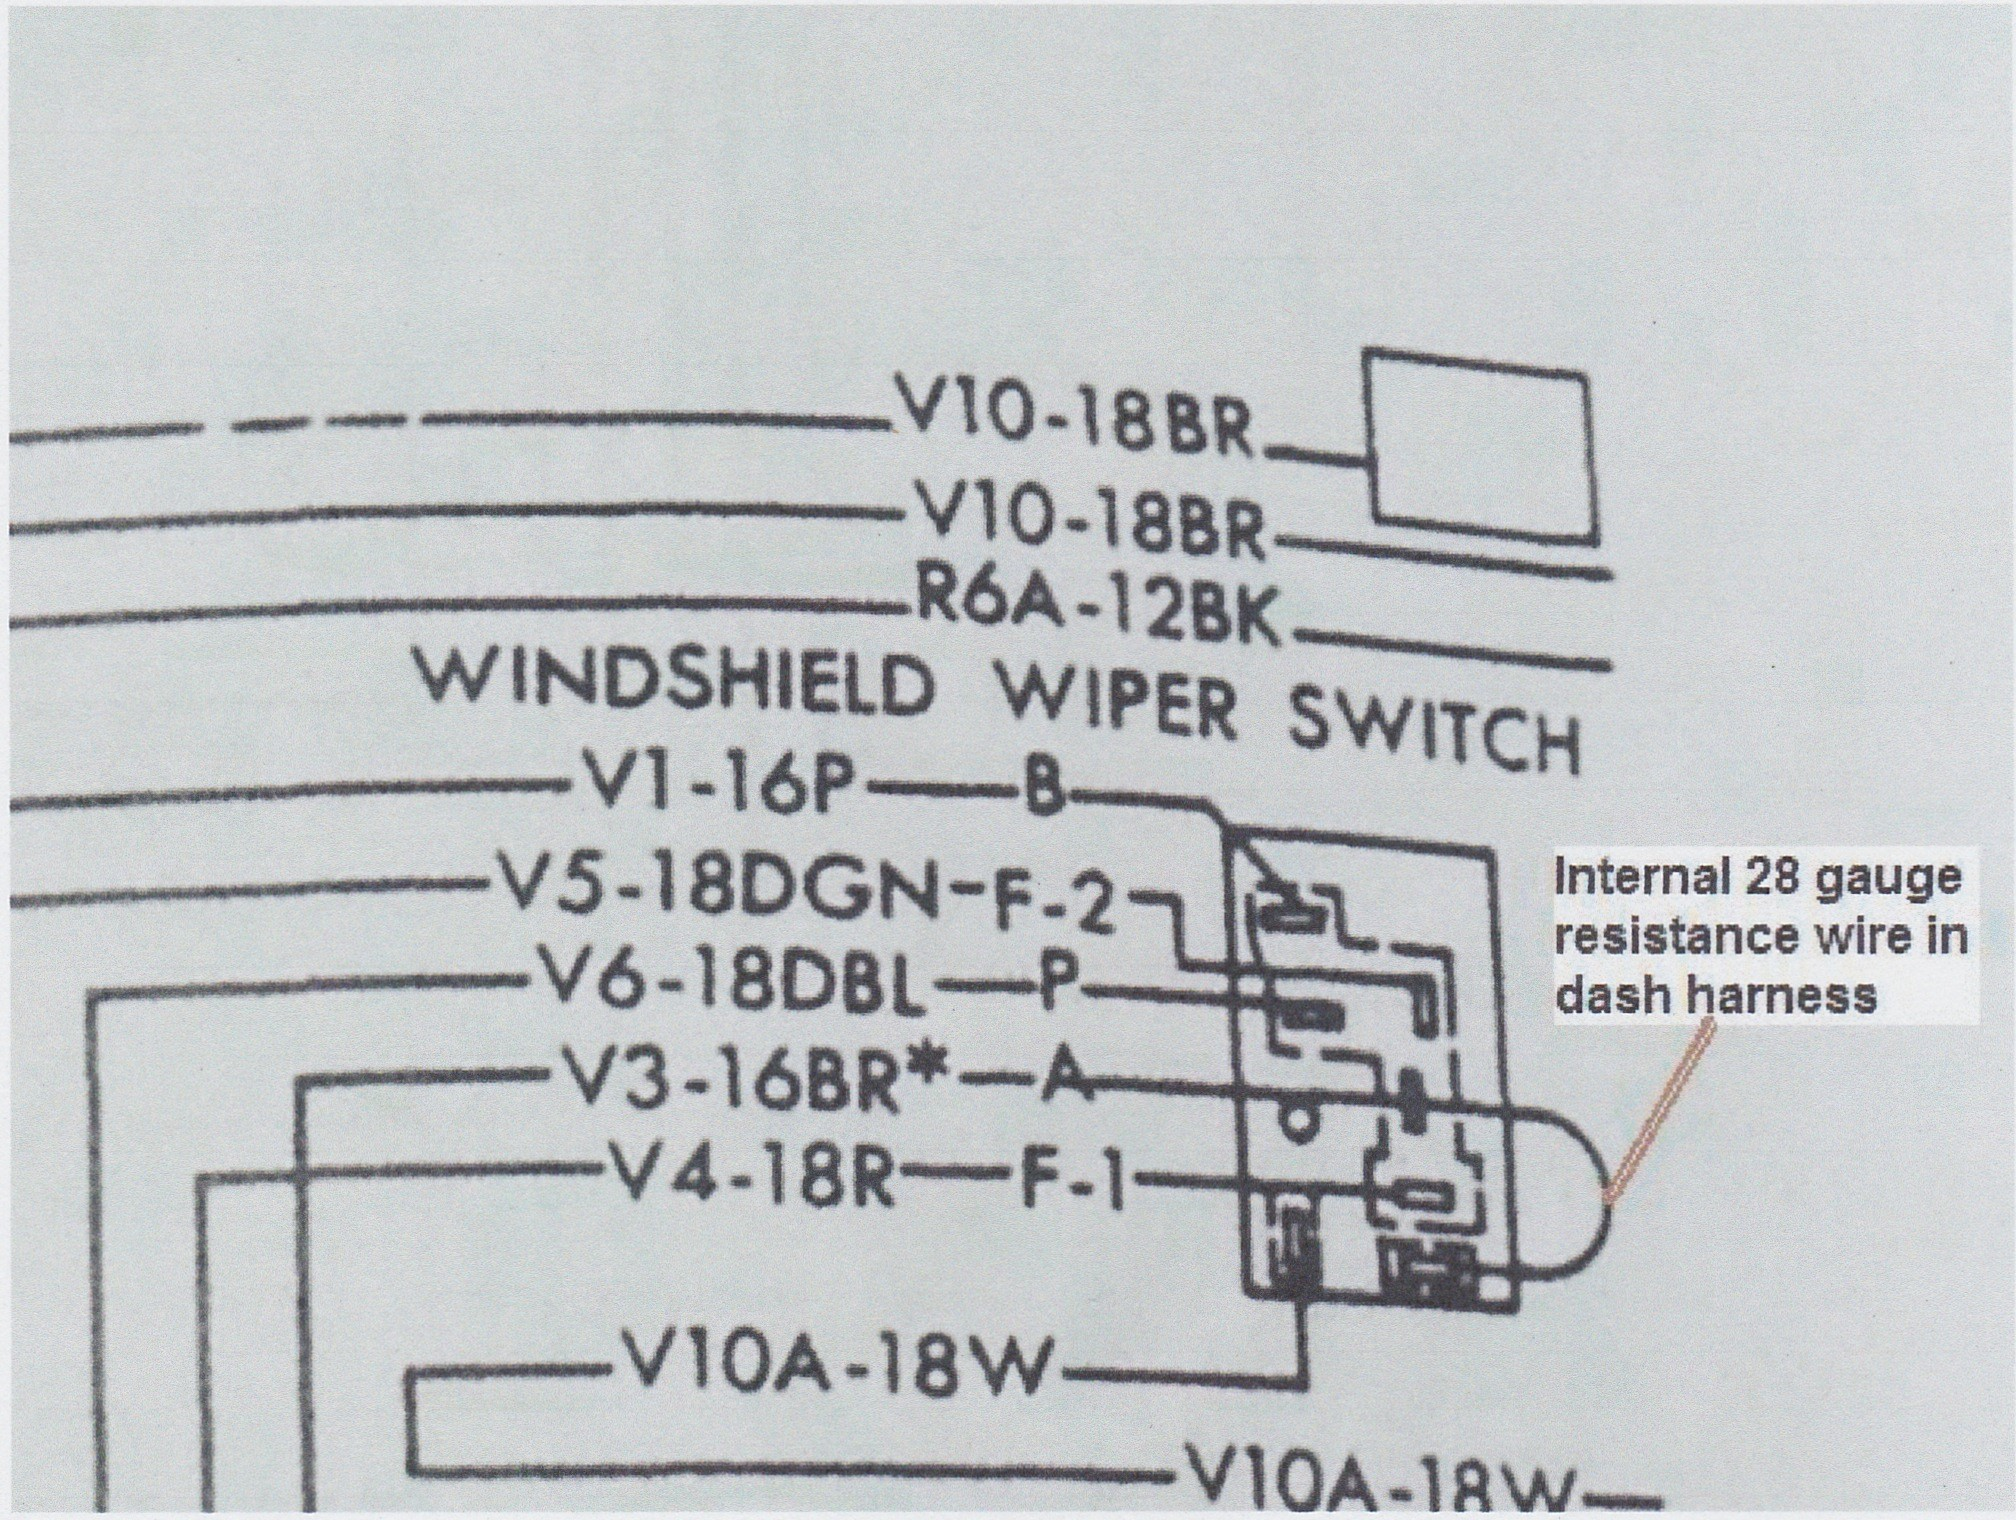 Windshield Wiper Switch Wiring Diagram Free Download